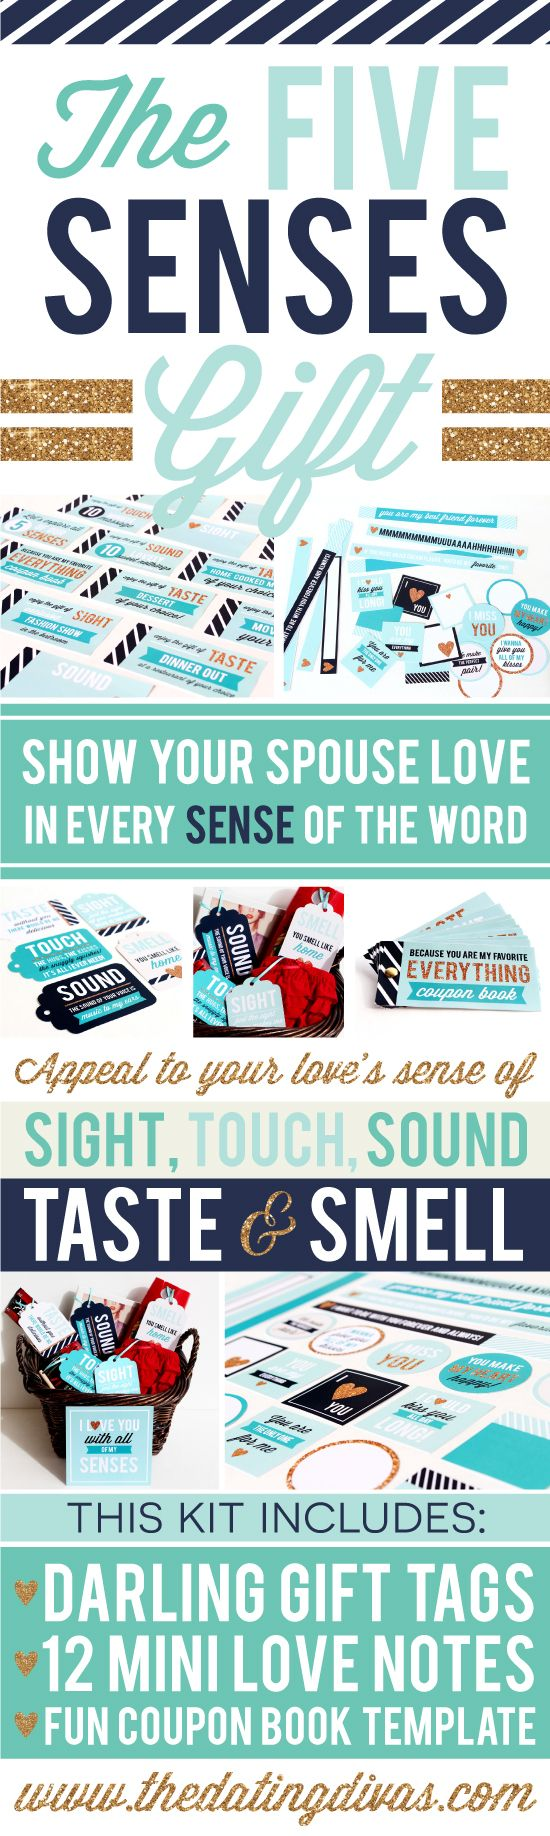 Five Senses Gift Printable Pack - This would make a great Valentine's Day for your significant other!